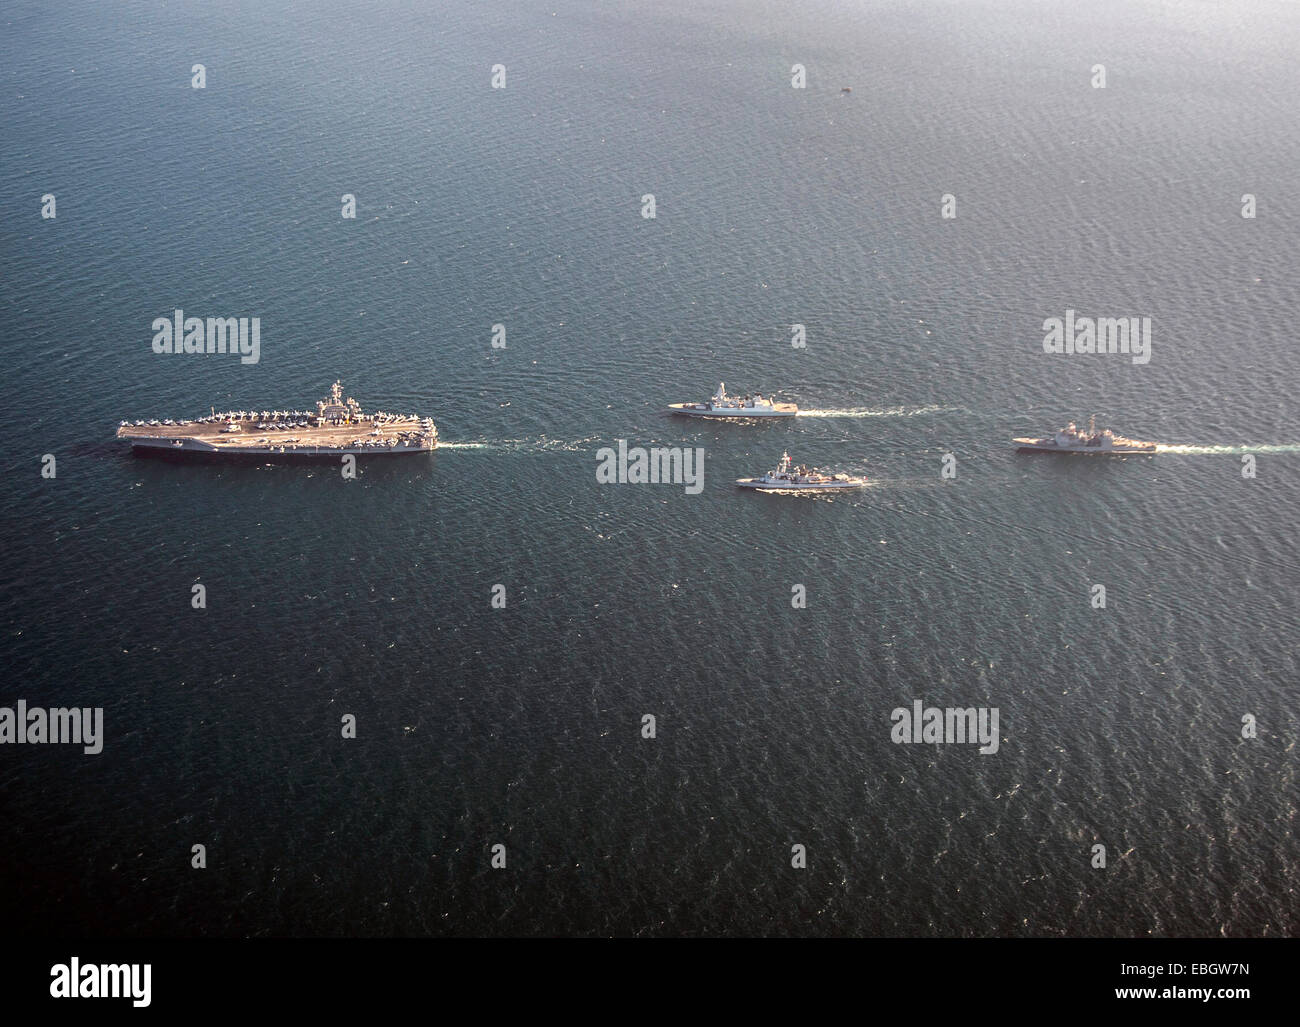 US Navy nuclear aircraft carrier USS Carl Vinson sails in formation with the Royal Navy Daring-class air defence - Stock Image